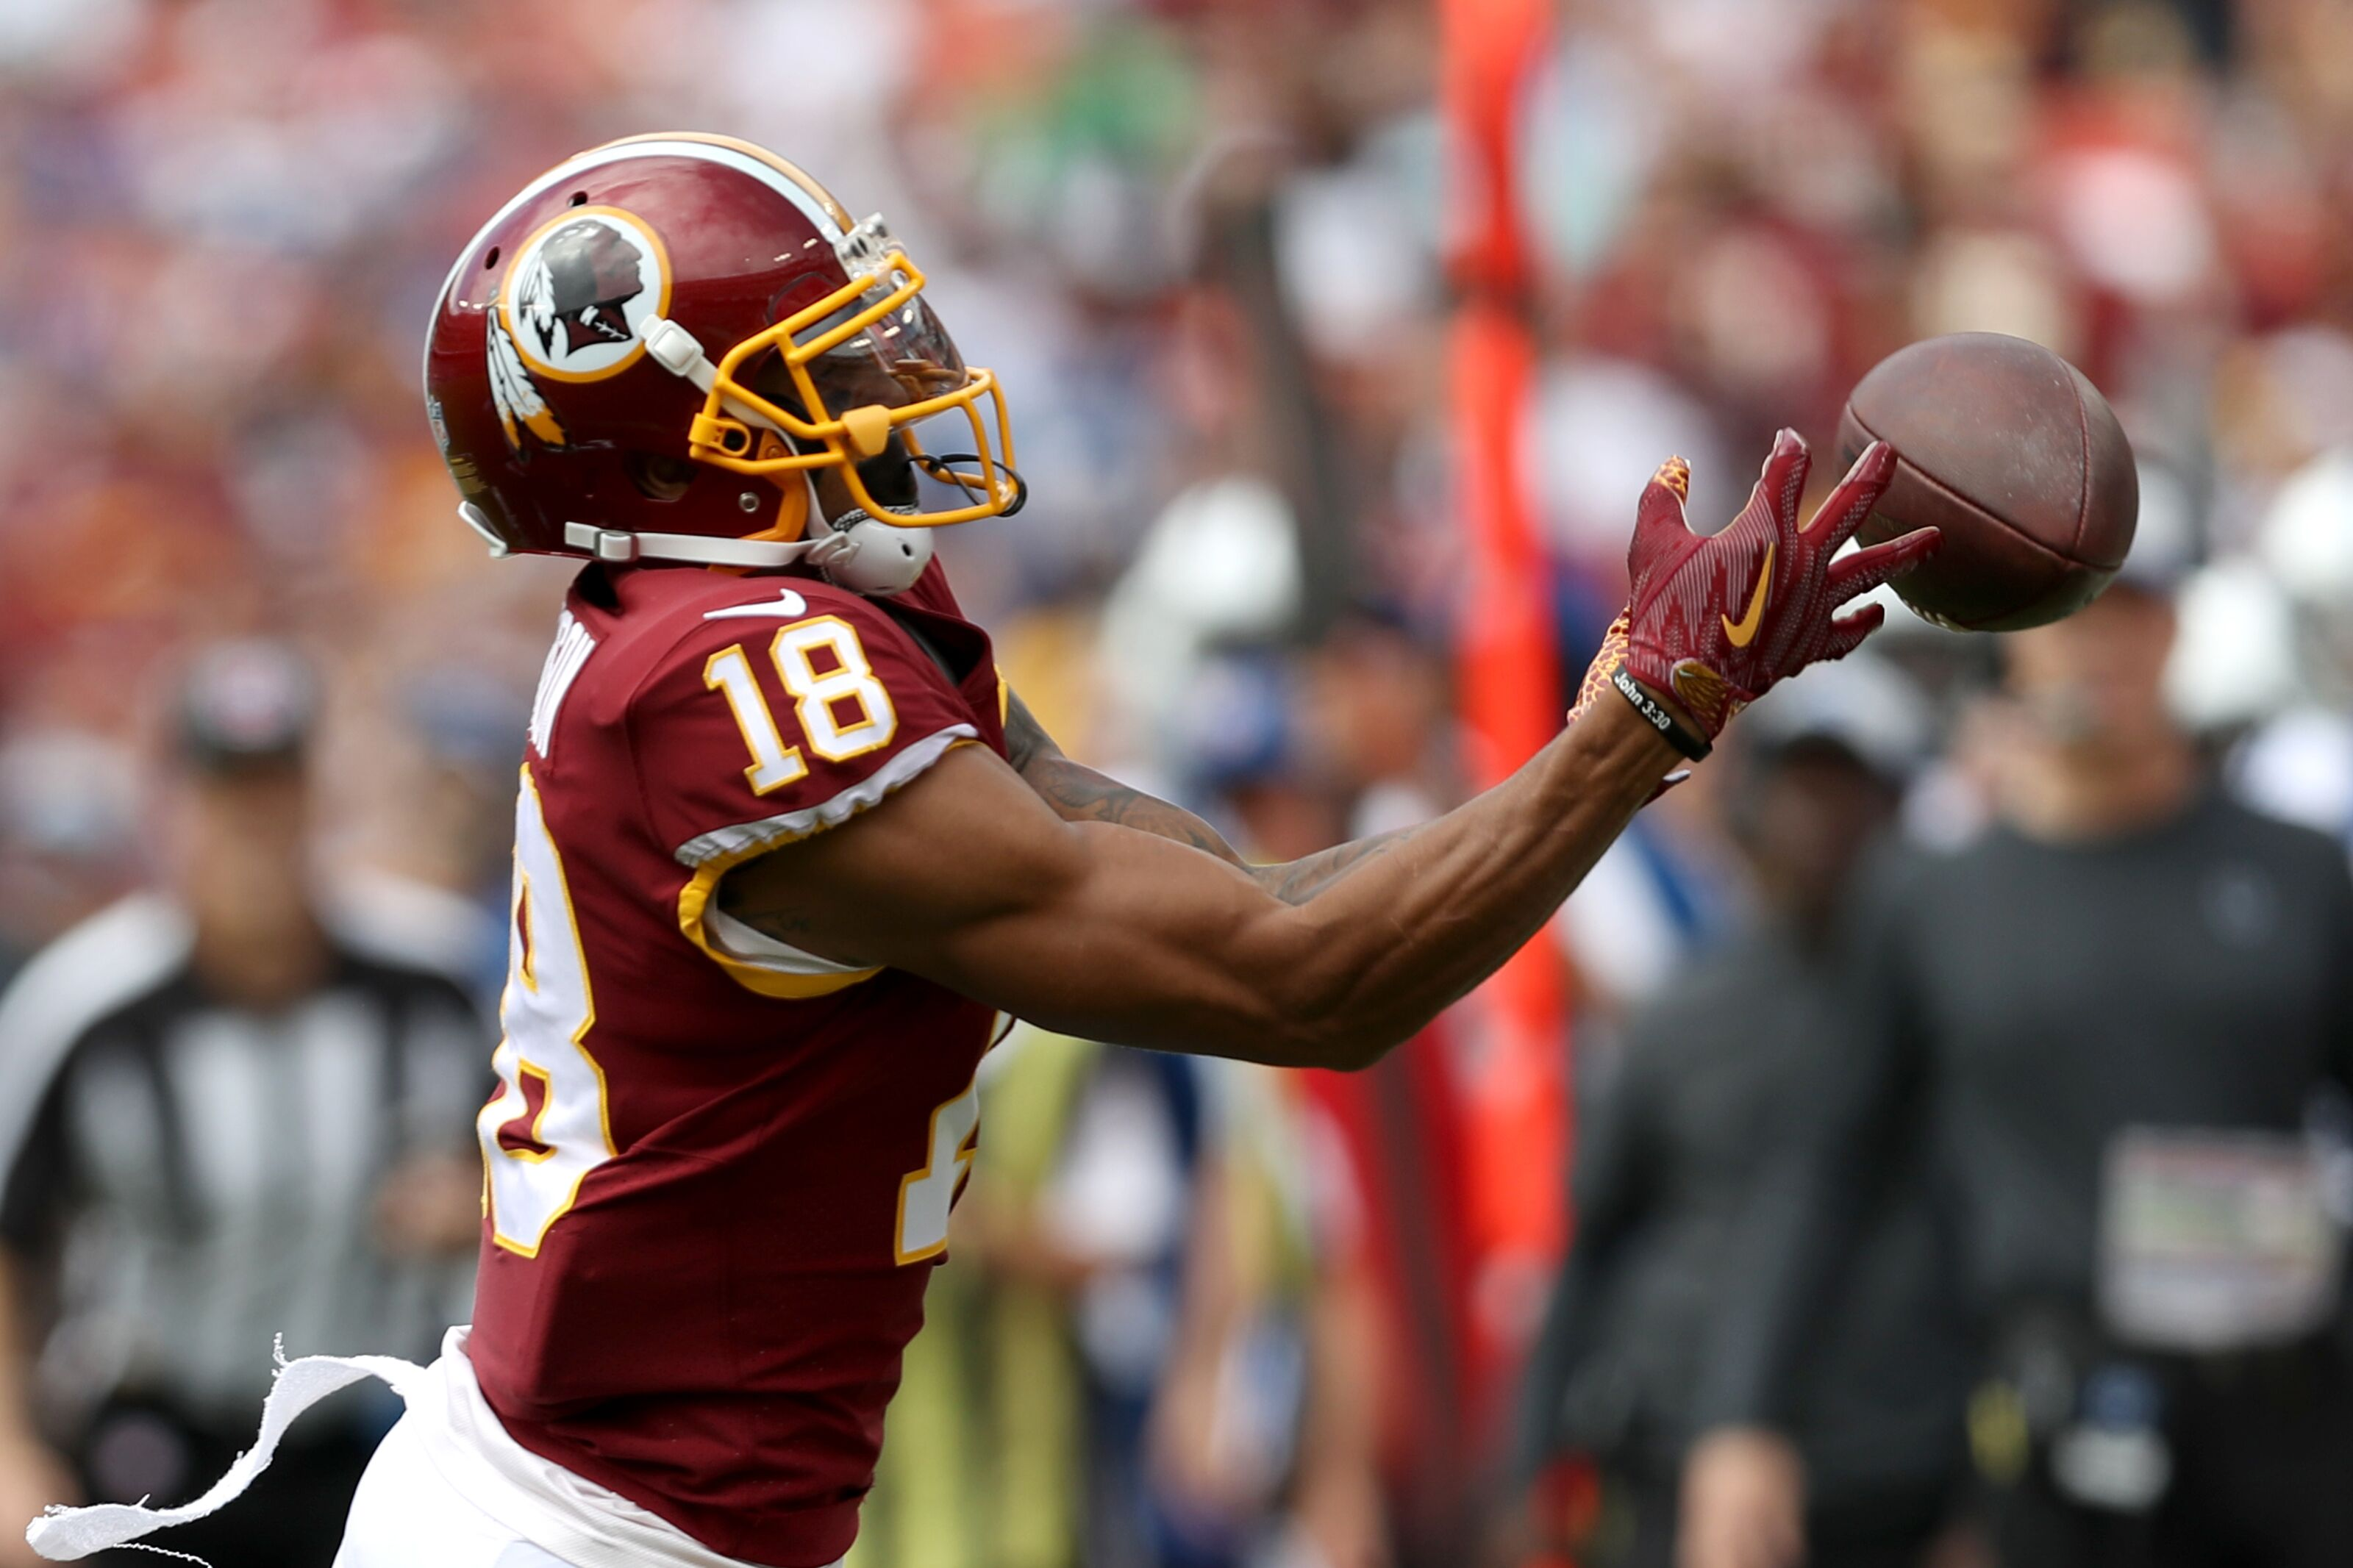 Redskins past draft failures at wide receiver aren't indicative of future